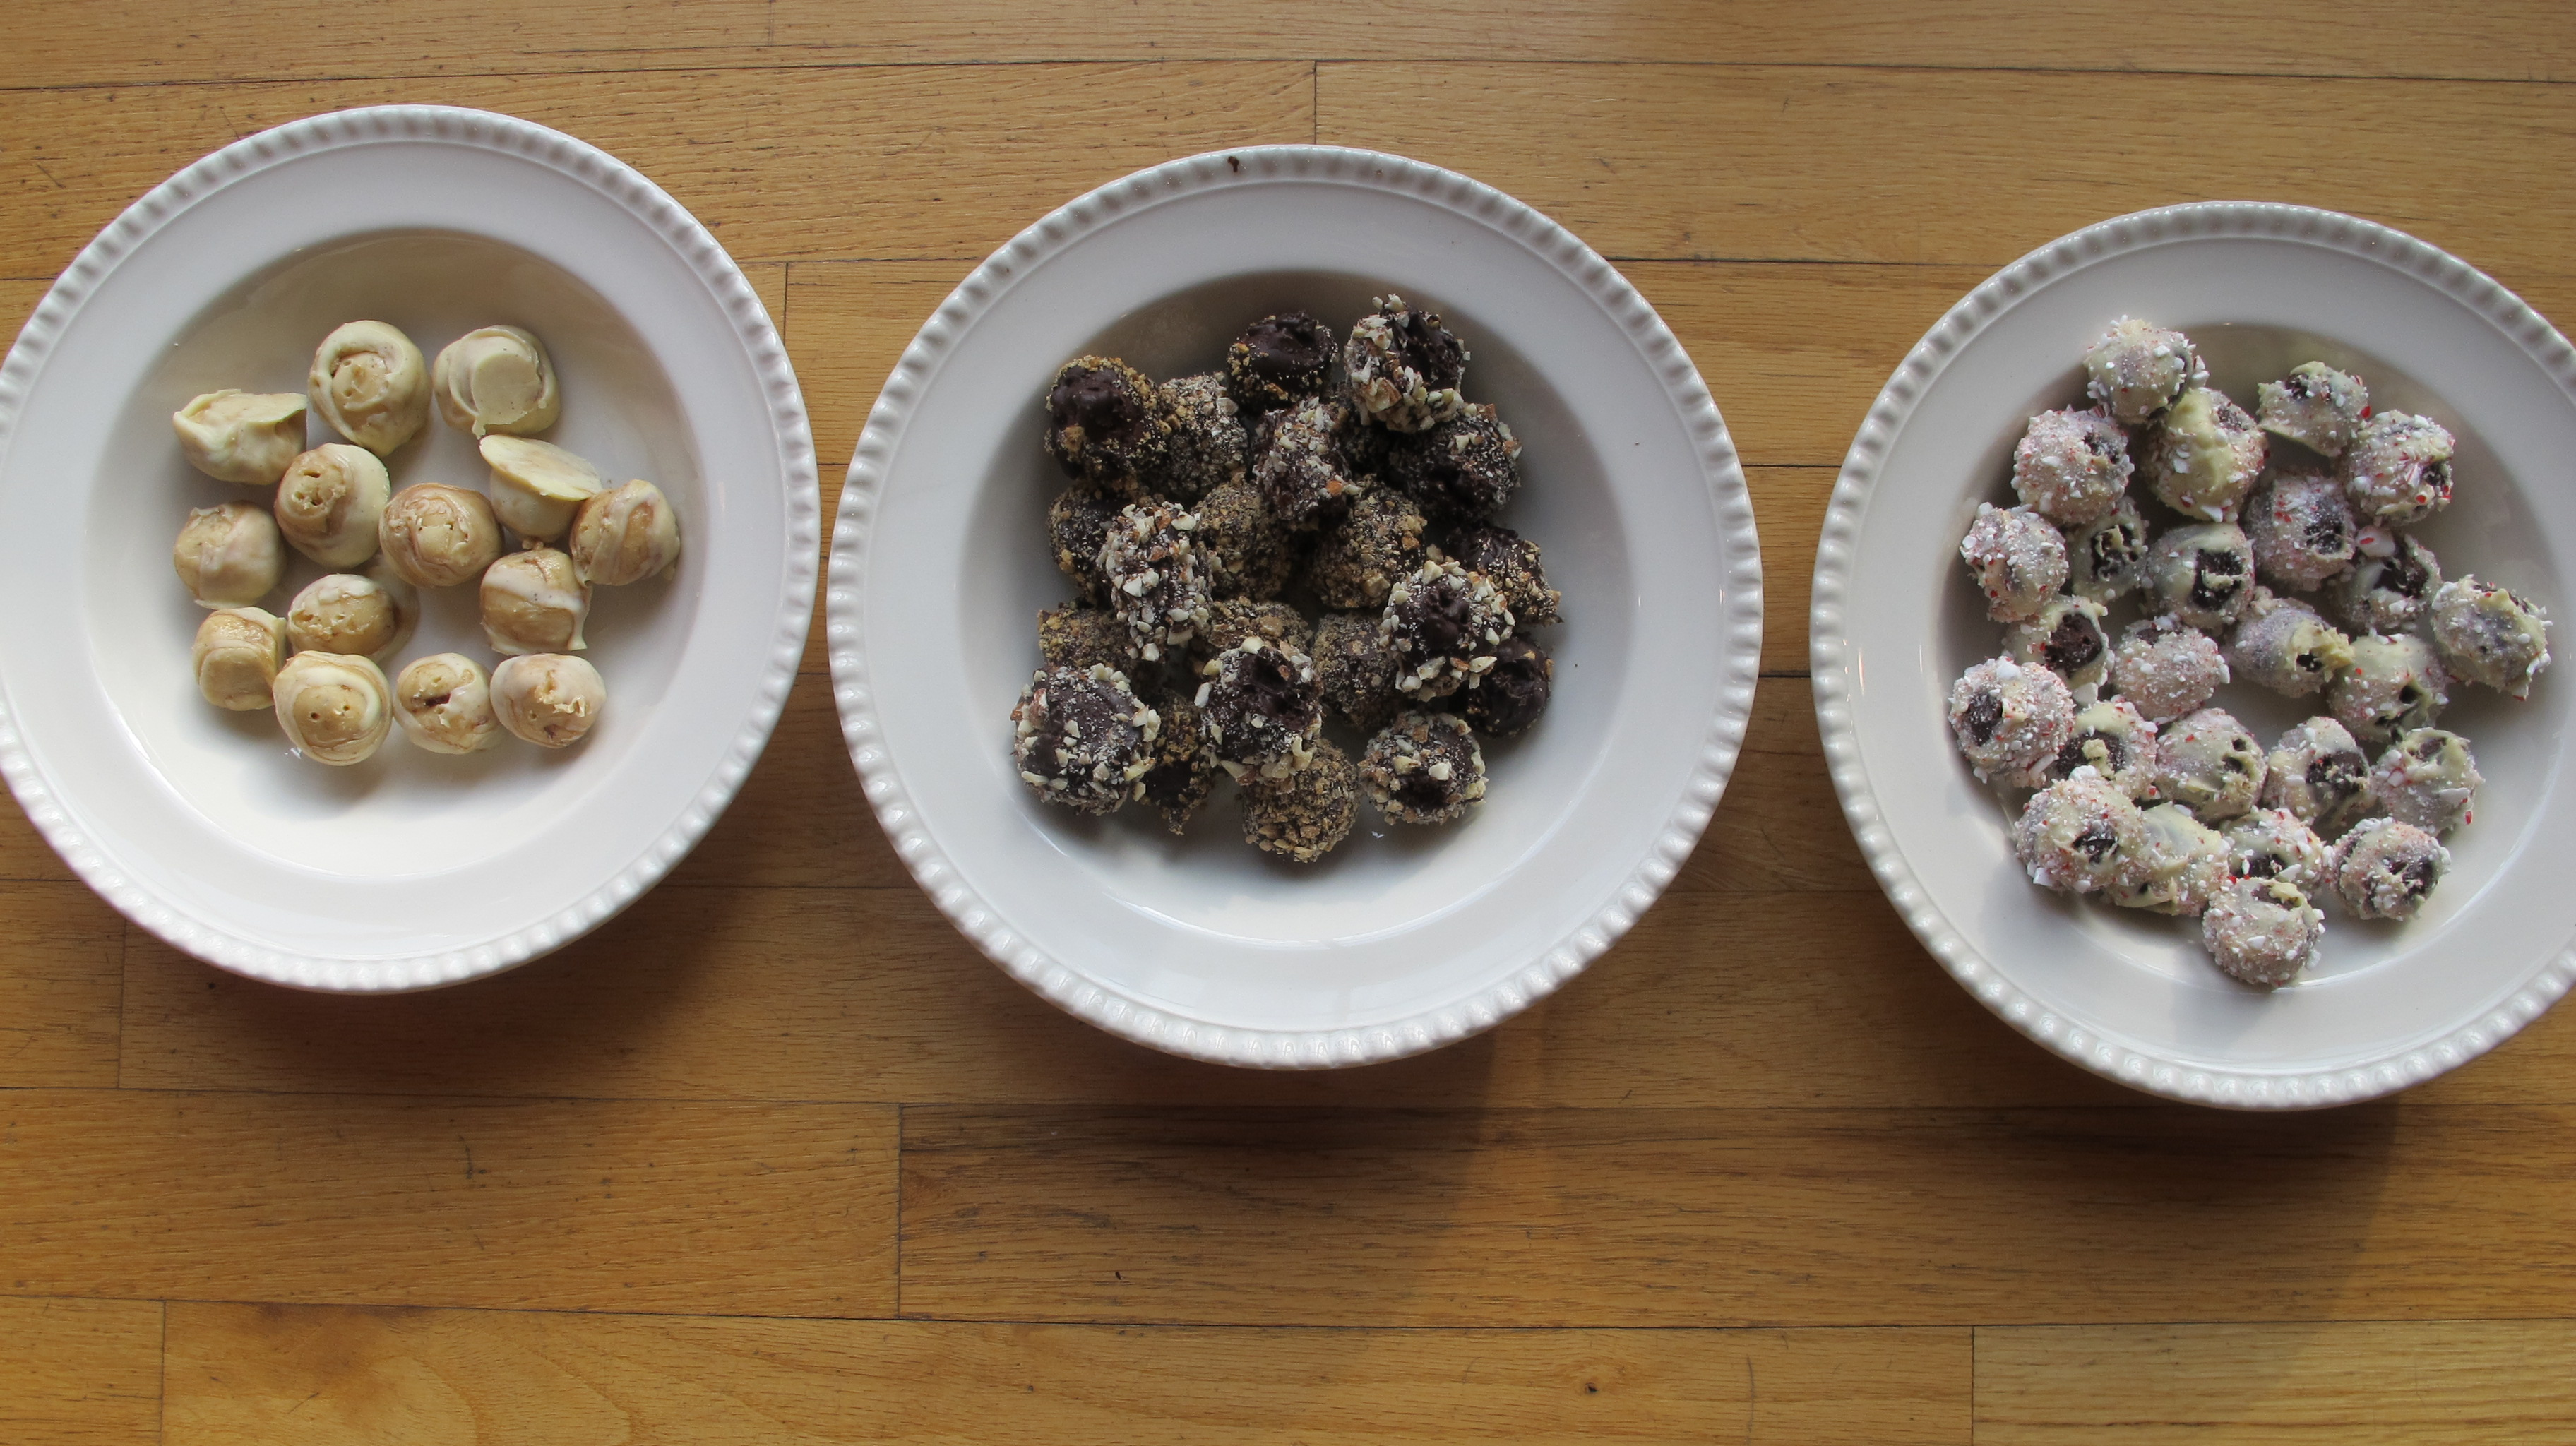 White Chocolate Truffles with Nonna's Cherry Jam, Dark Chocolate Hazelnut and Almond Truffles, and Peppermint Bark Truffles (from left to right).